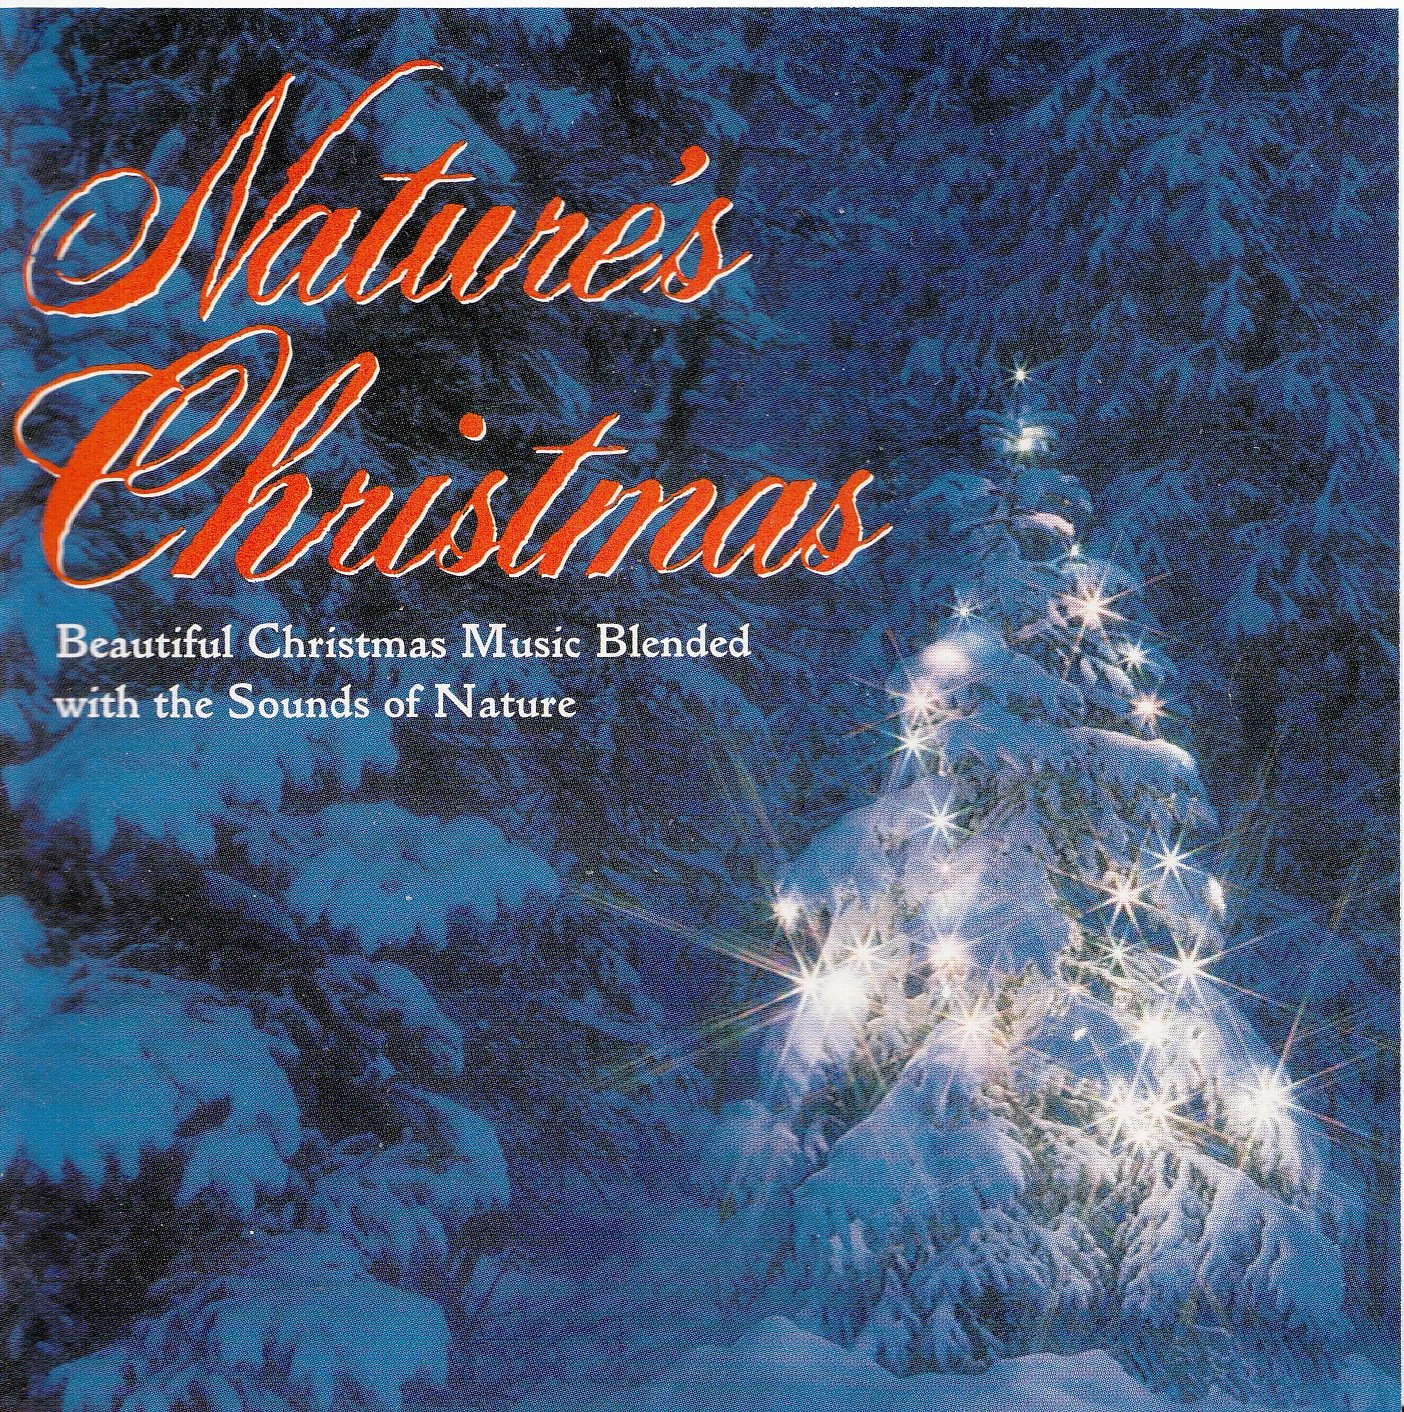 Nature's Christmas: Beautiful Christmas Music Blended with the Sounds of Nature